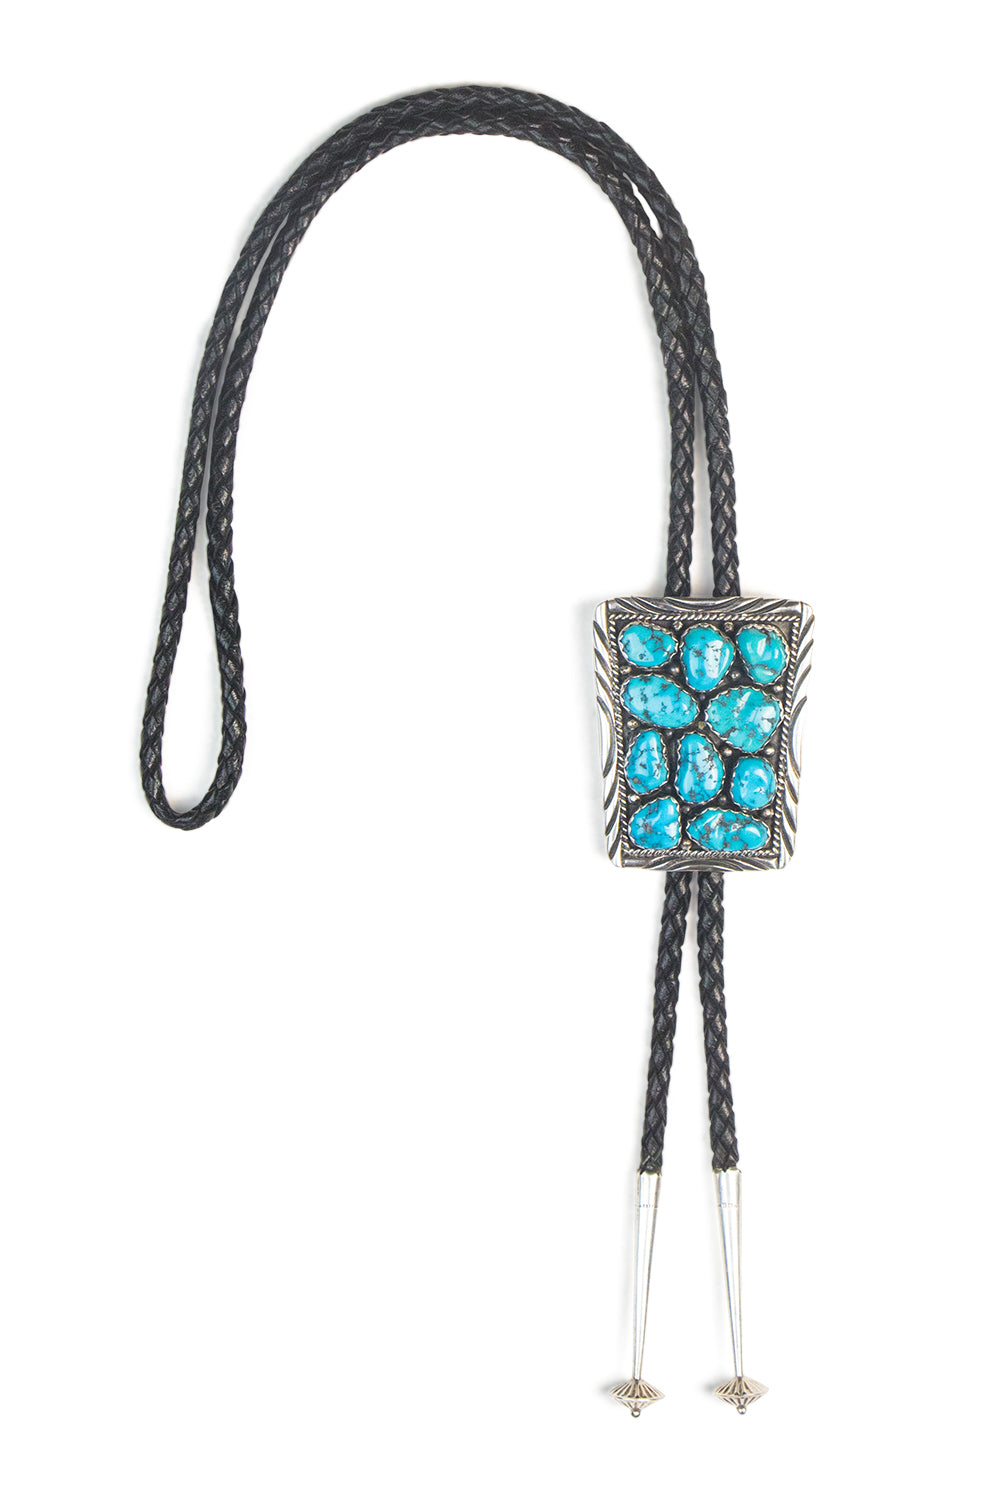 Bolo, Cluster, Turquoise, Hallmark, Turquoise, 916